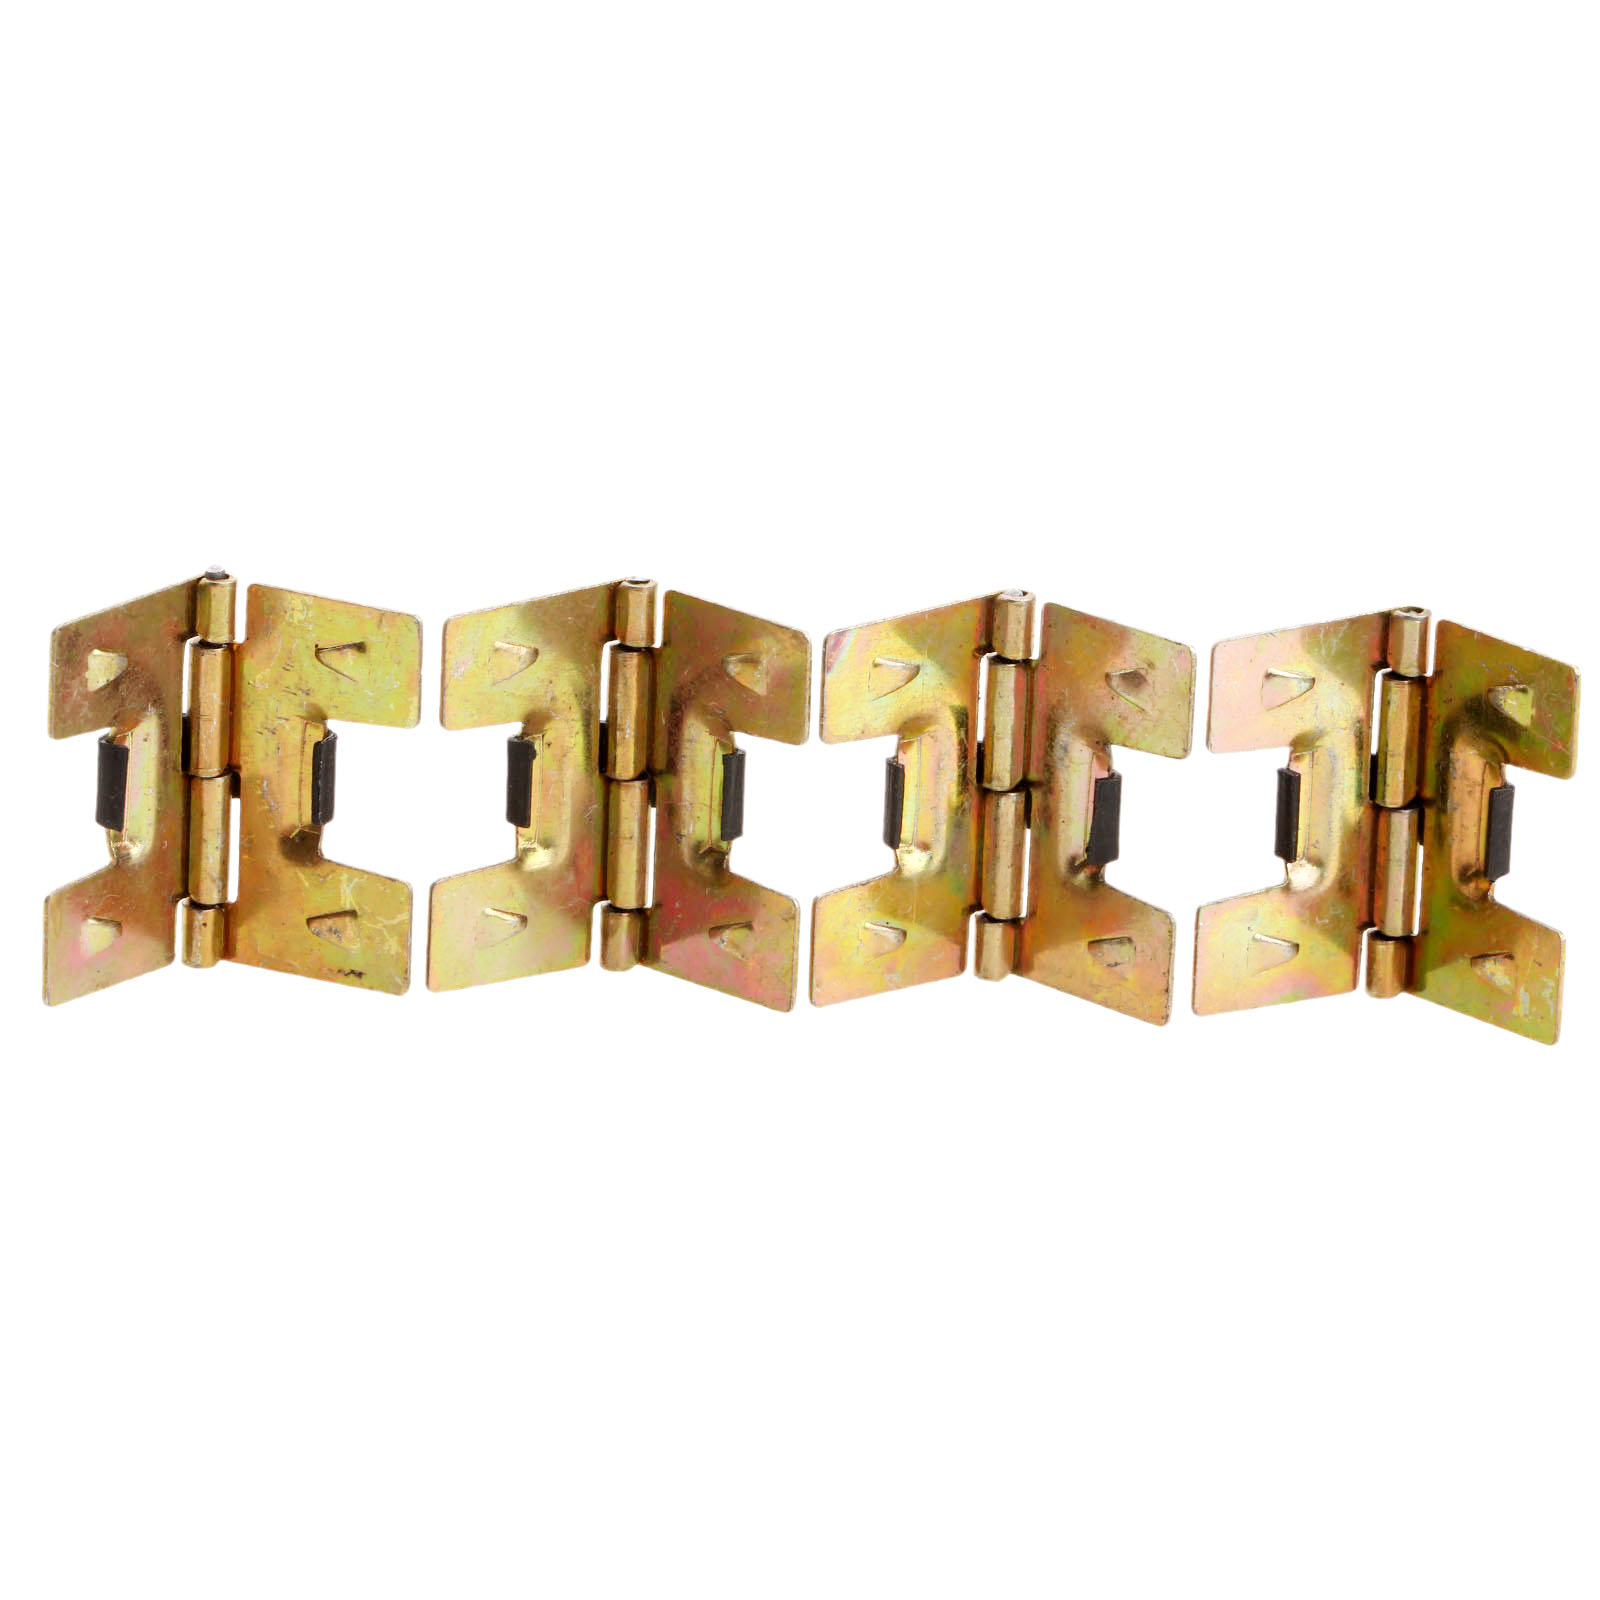 4Pcs 19x18mm Gold Cabinet Hinges Furniture Accessories Small Wooden Gift  Box Decorative Hinges Fitting For Furniture Hardware In Cabinet Hinges From  Home ...